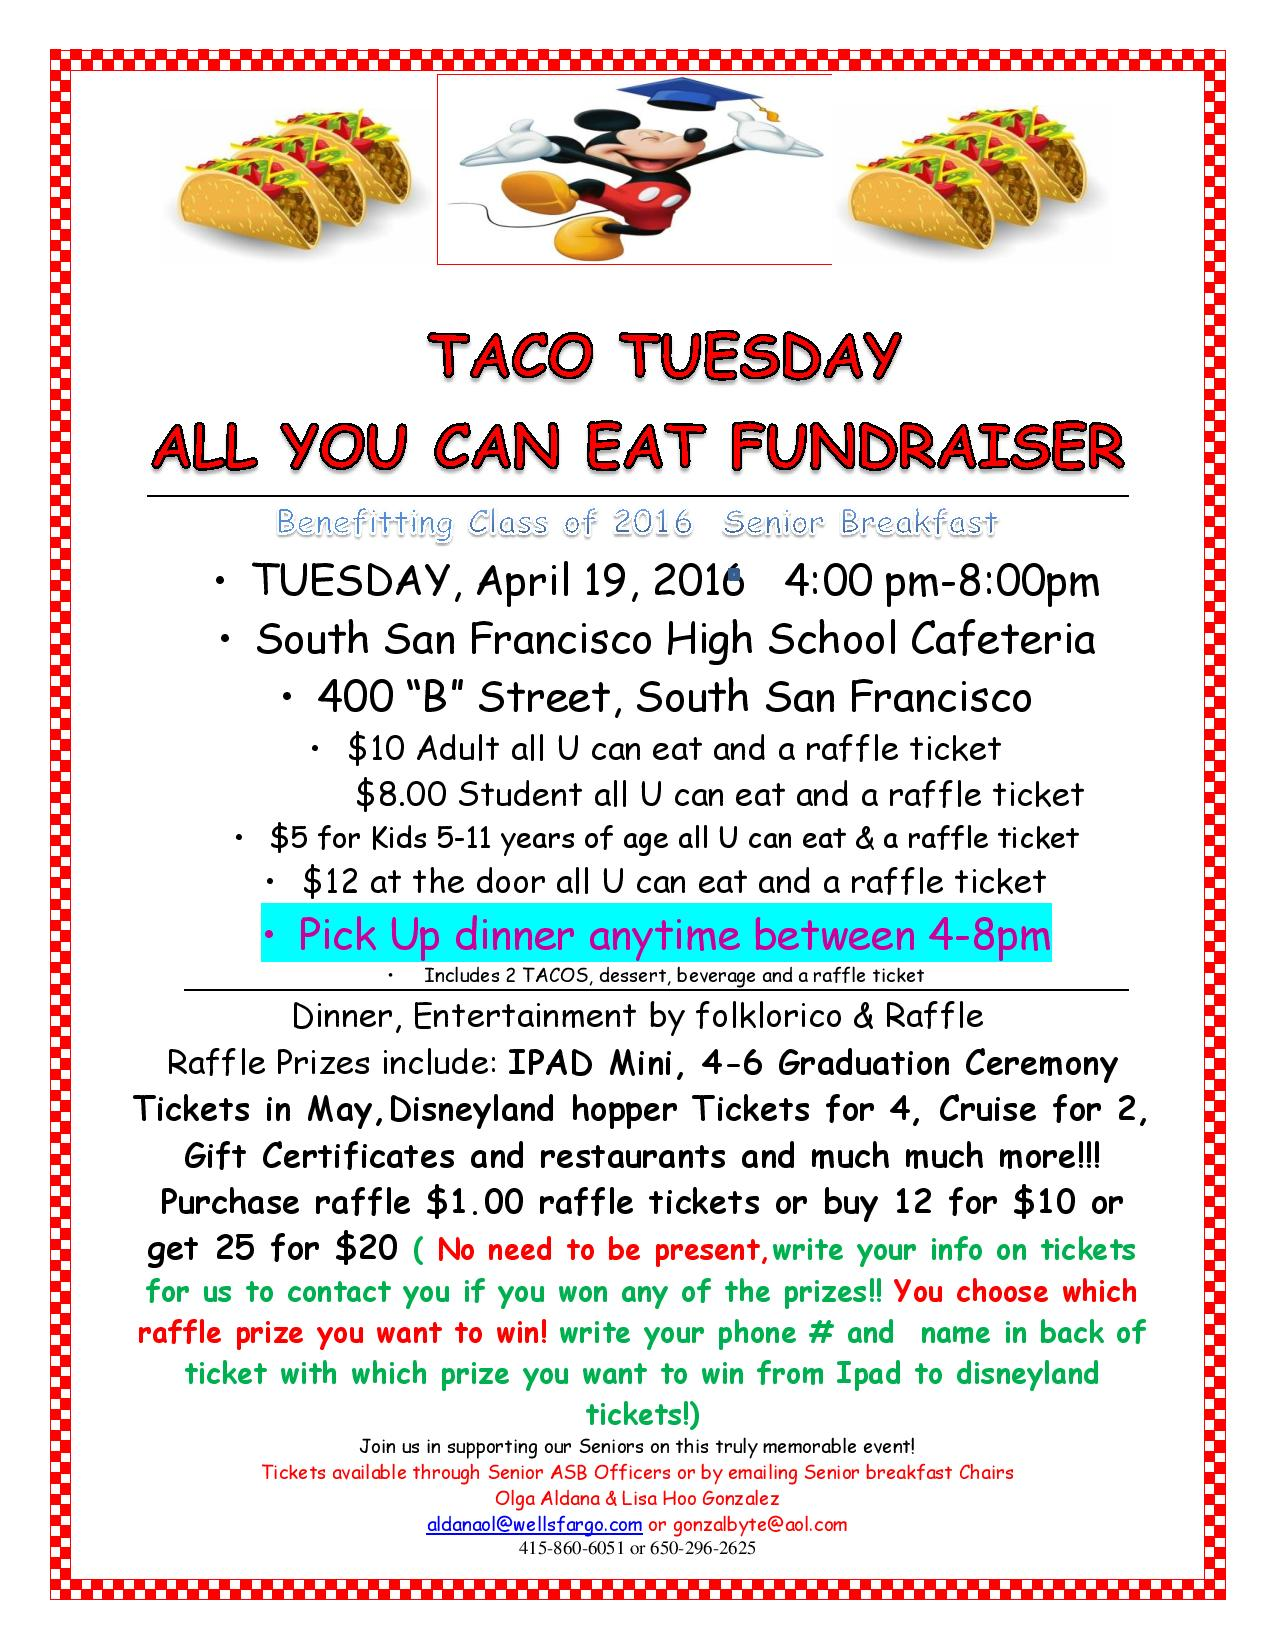 taco tuesday fundraiser Senior Breakfast 2016 April 19th tuesday revised 4 til 8pm!!!!!!$-page-001